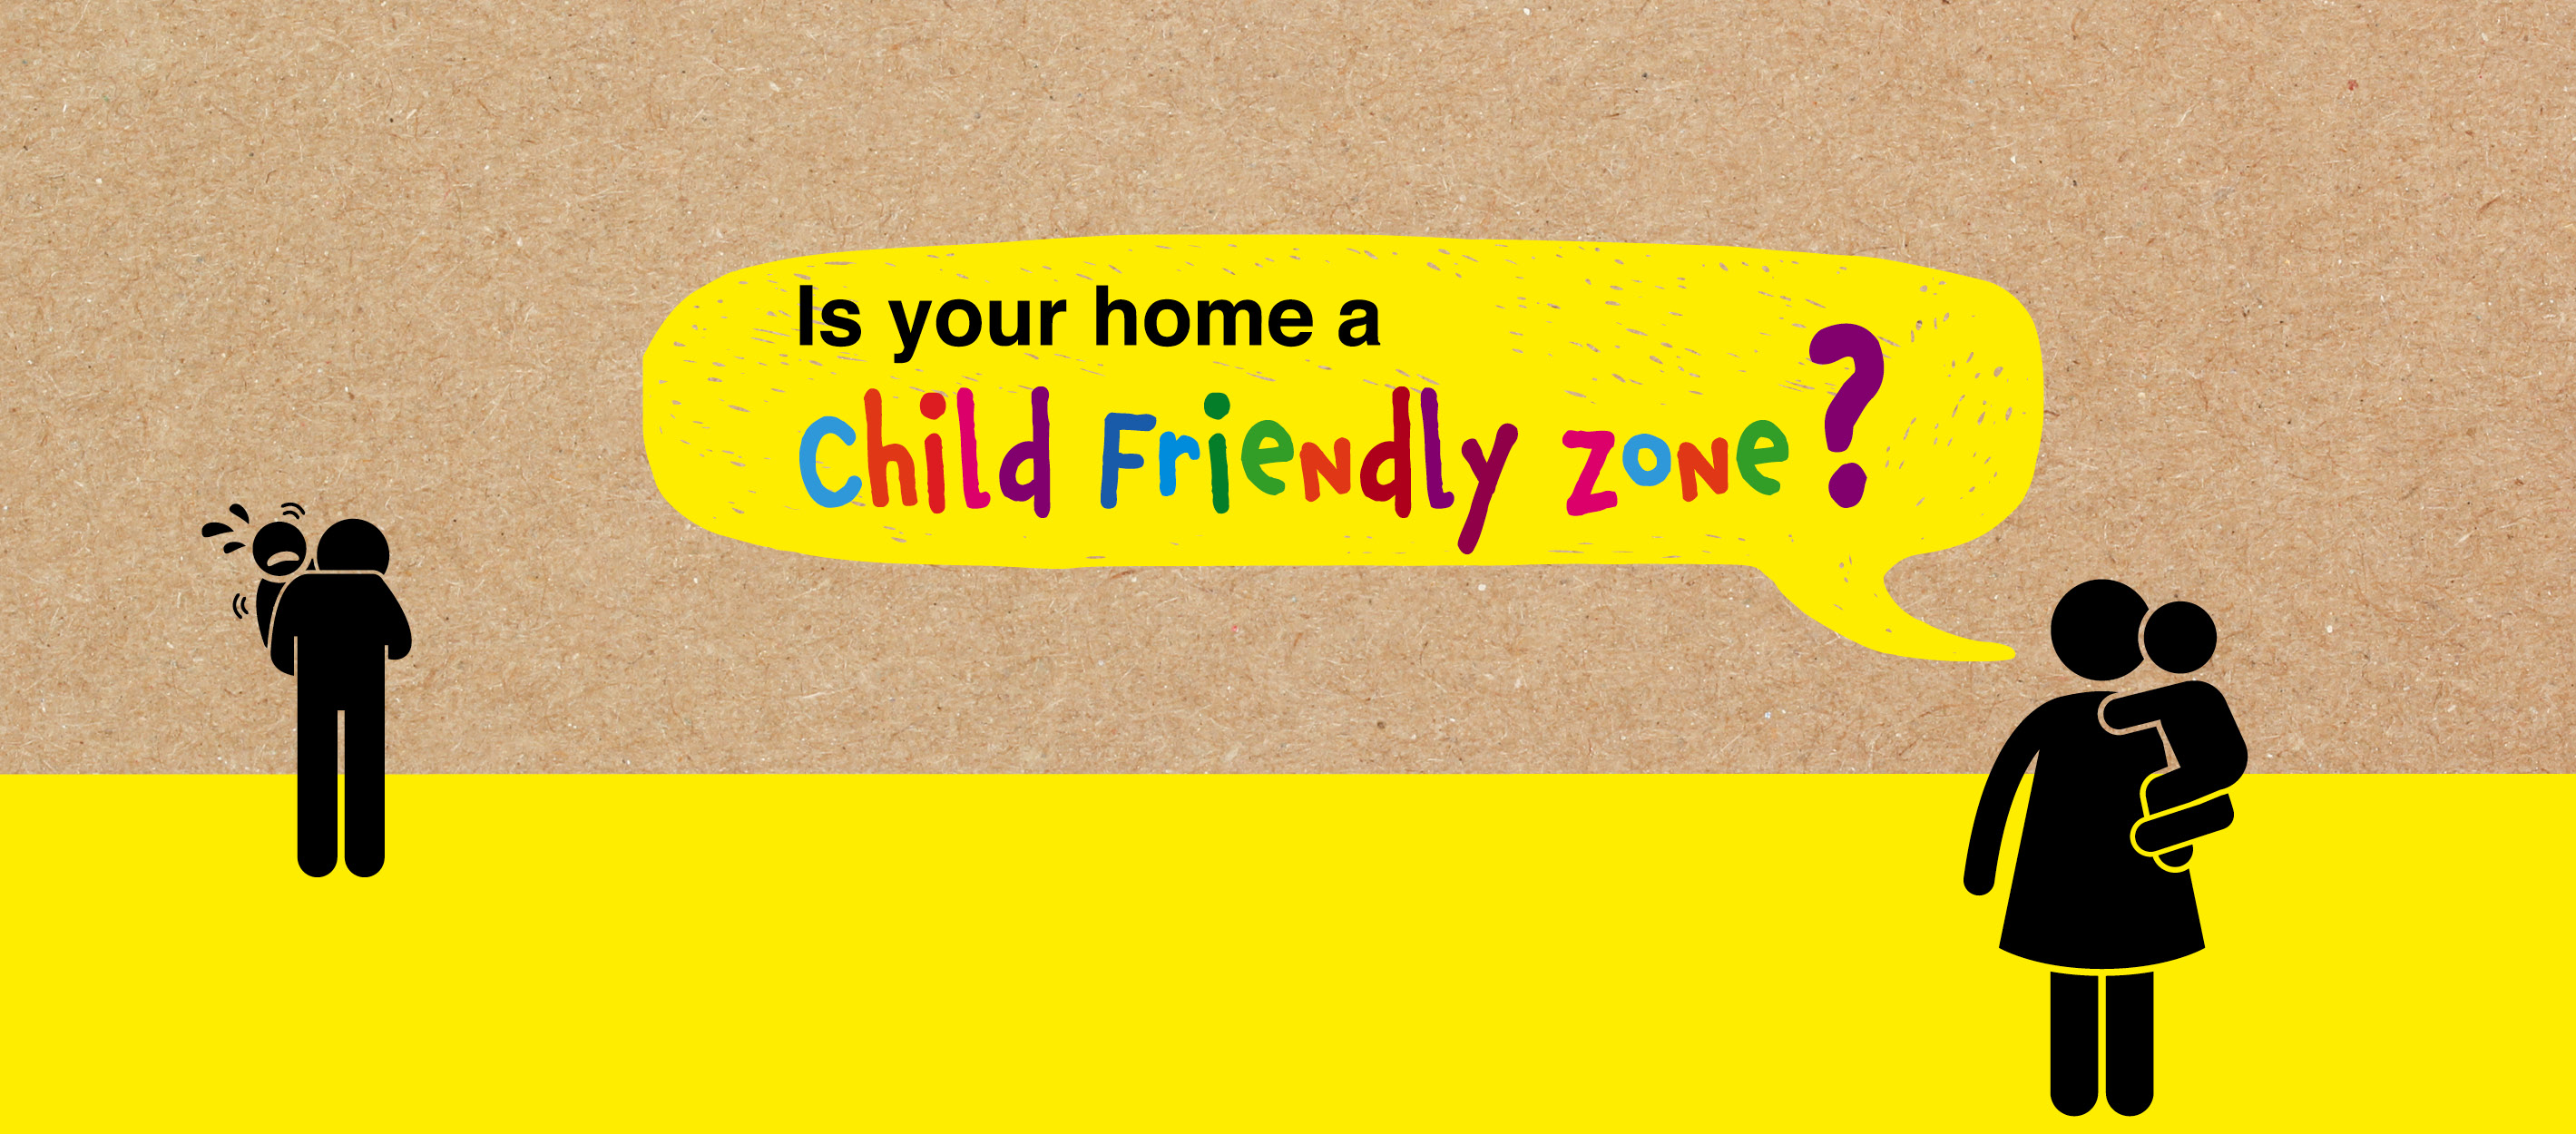 Is your home a child friendly zone?